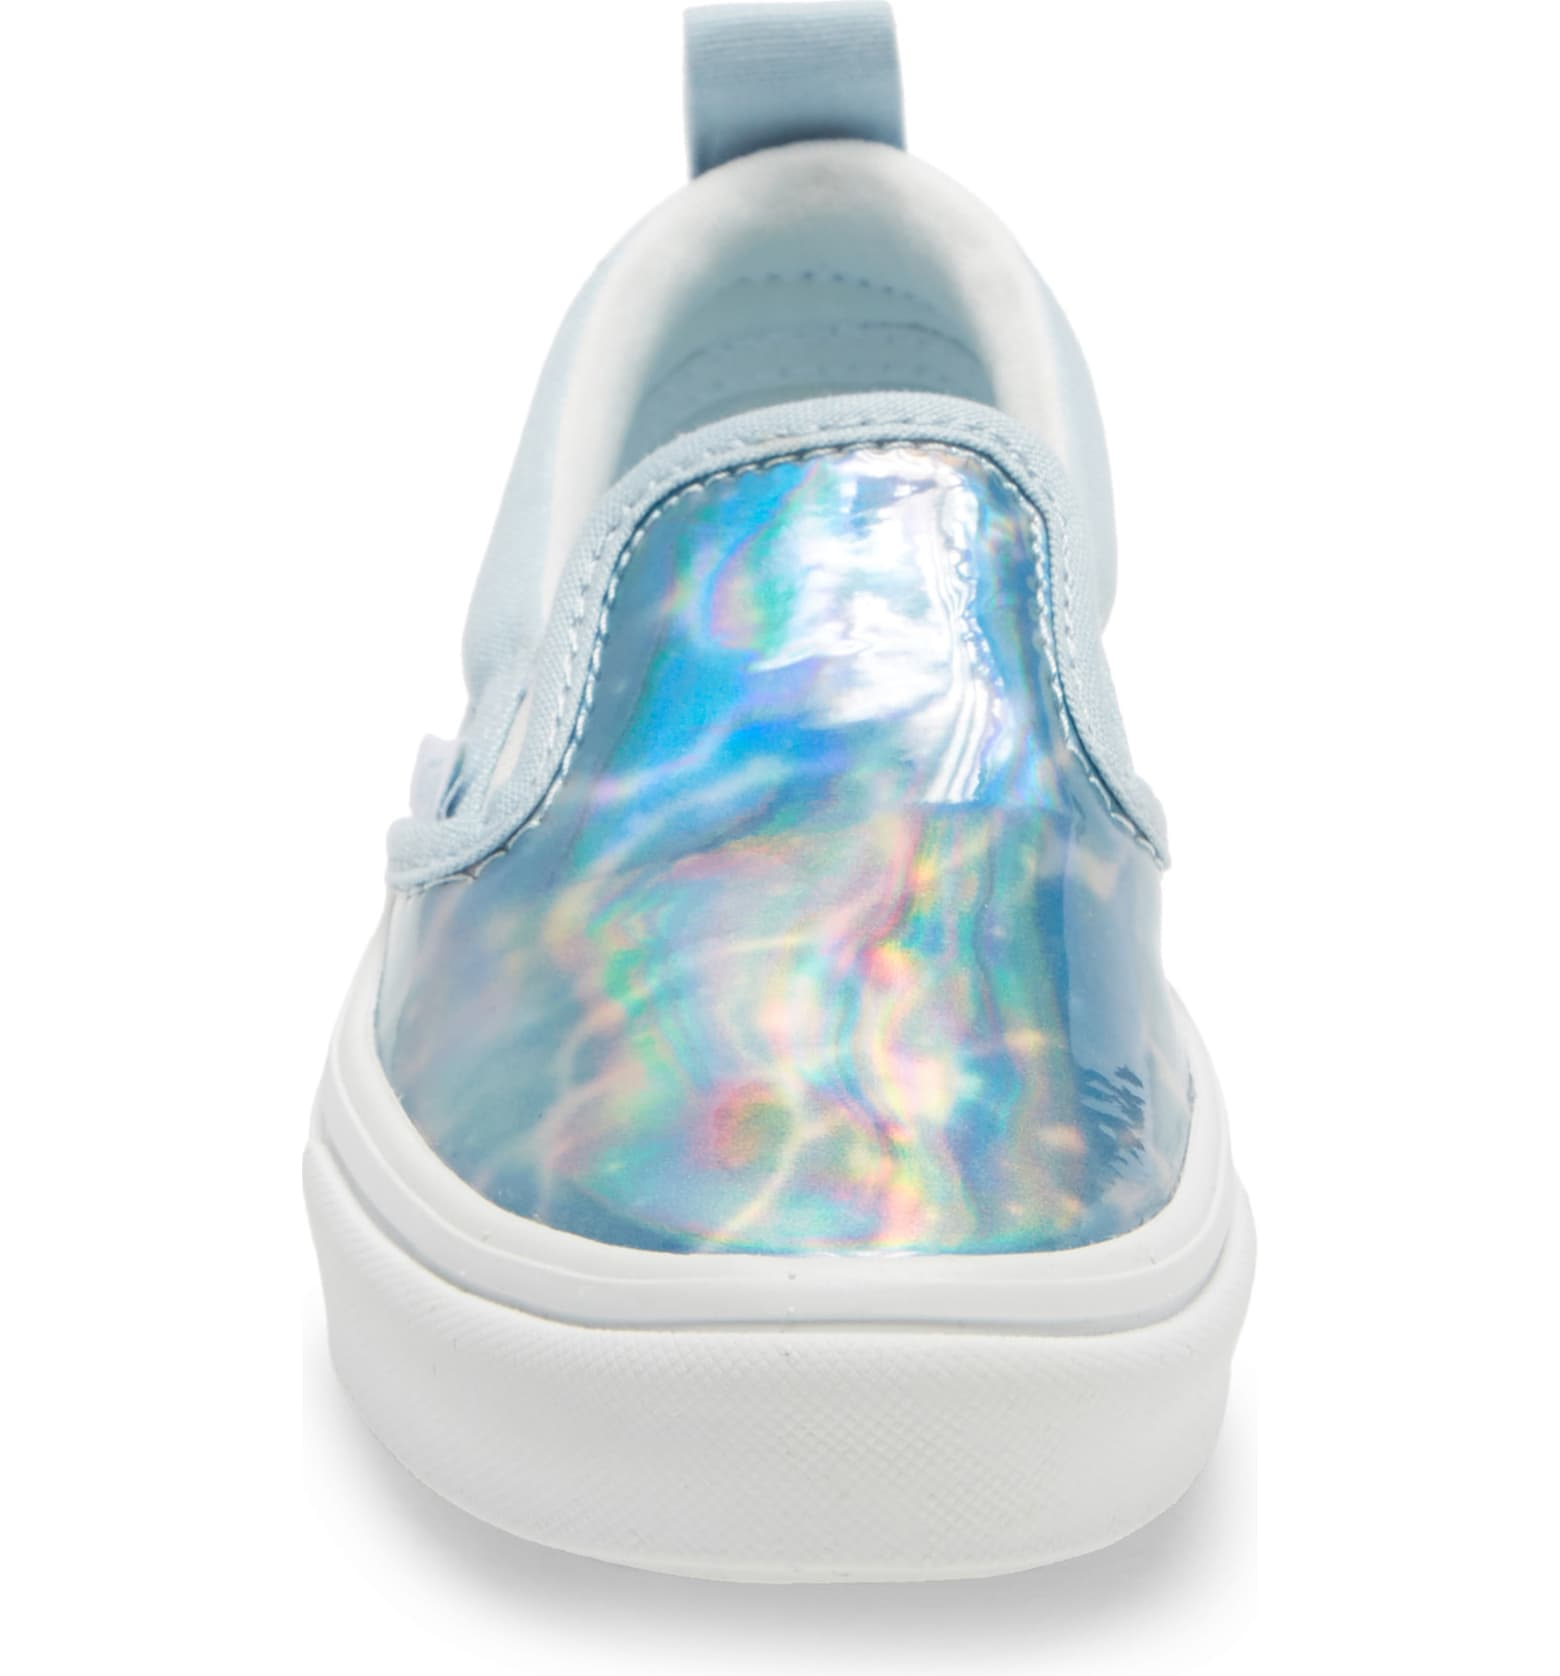 VANS SLIP-ON AUTISM AWARENESS COMFYCUSH KIDS SNEAKER VN0A4UFGWI7